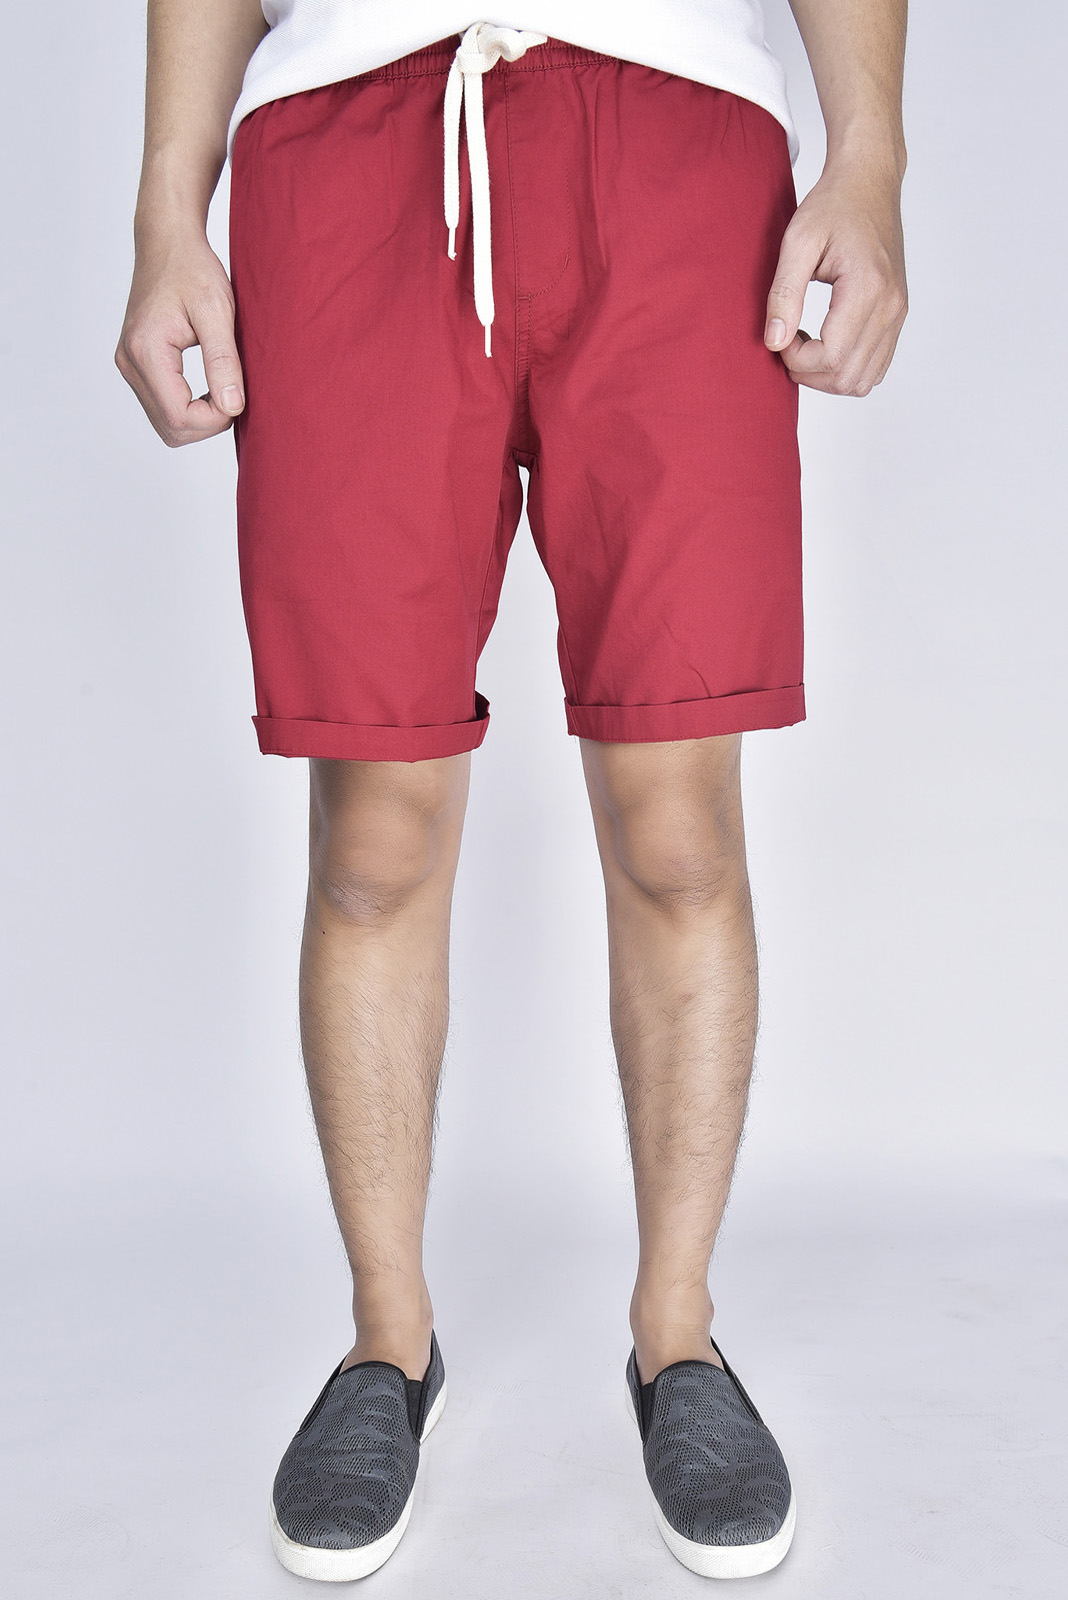 QUẦN SHORT KAKI CHRISTY